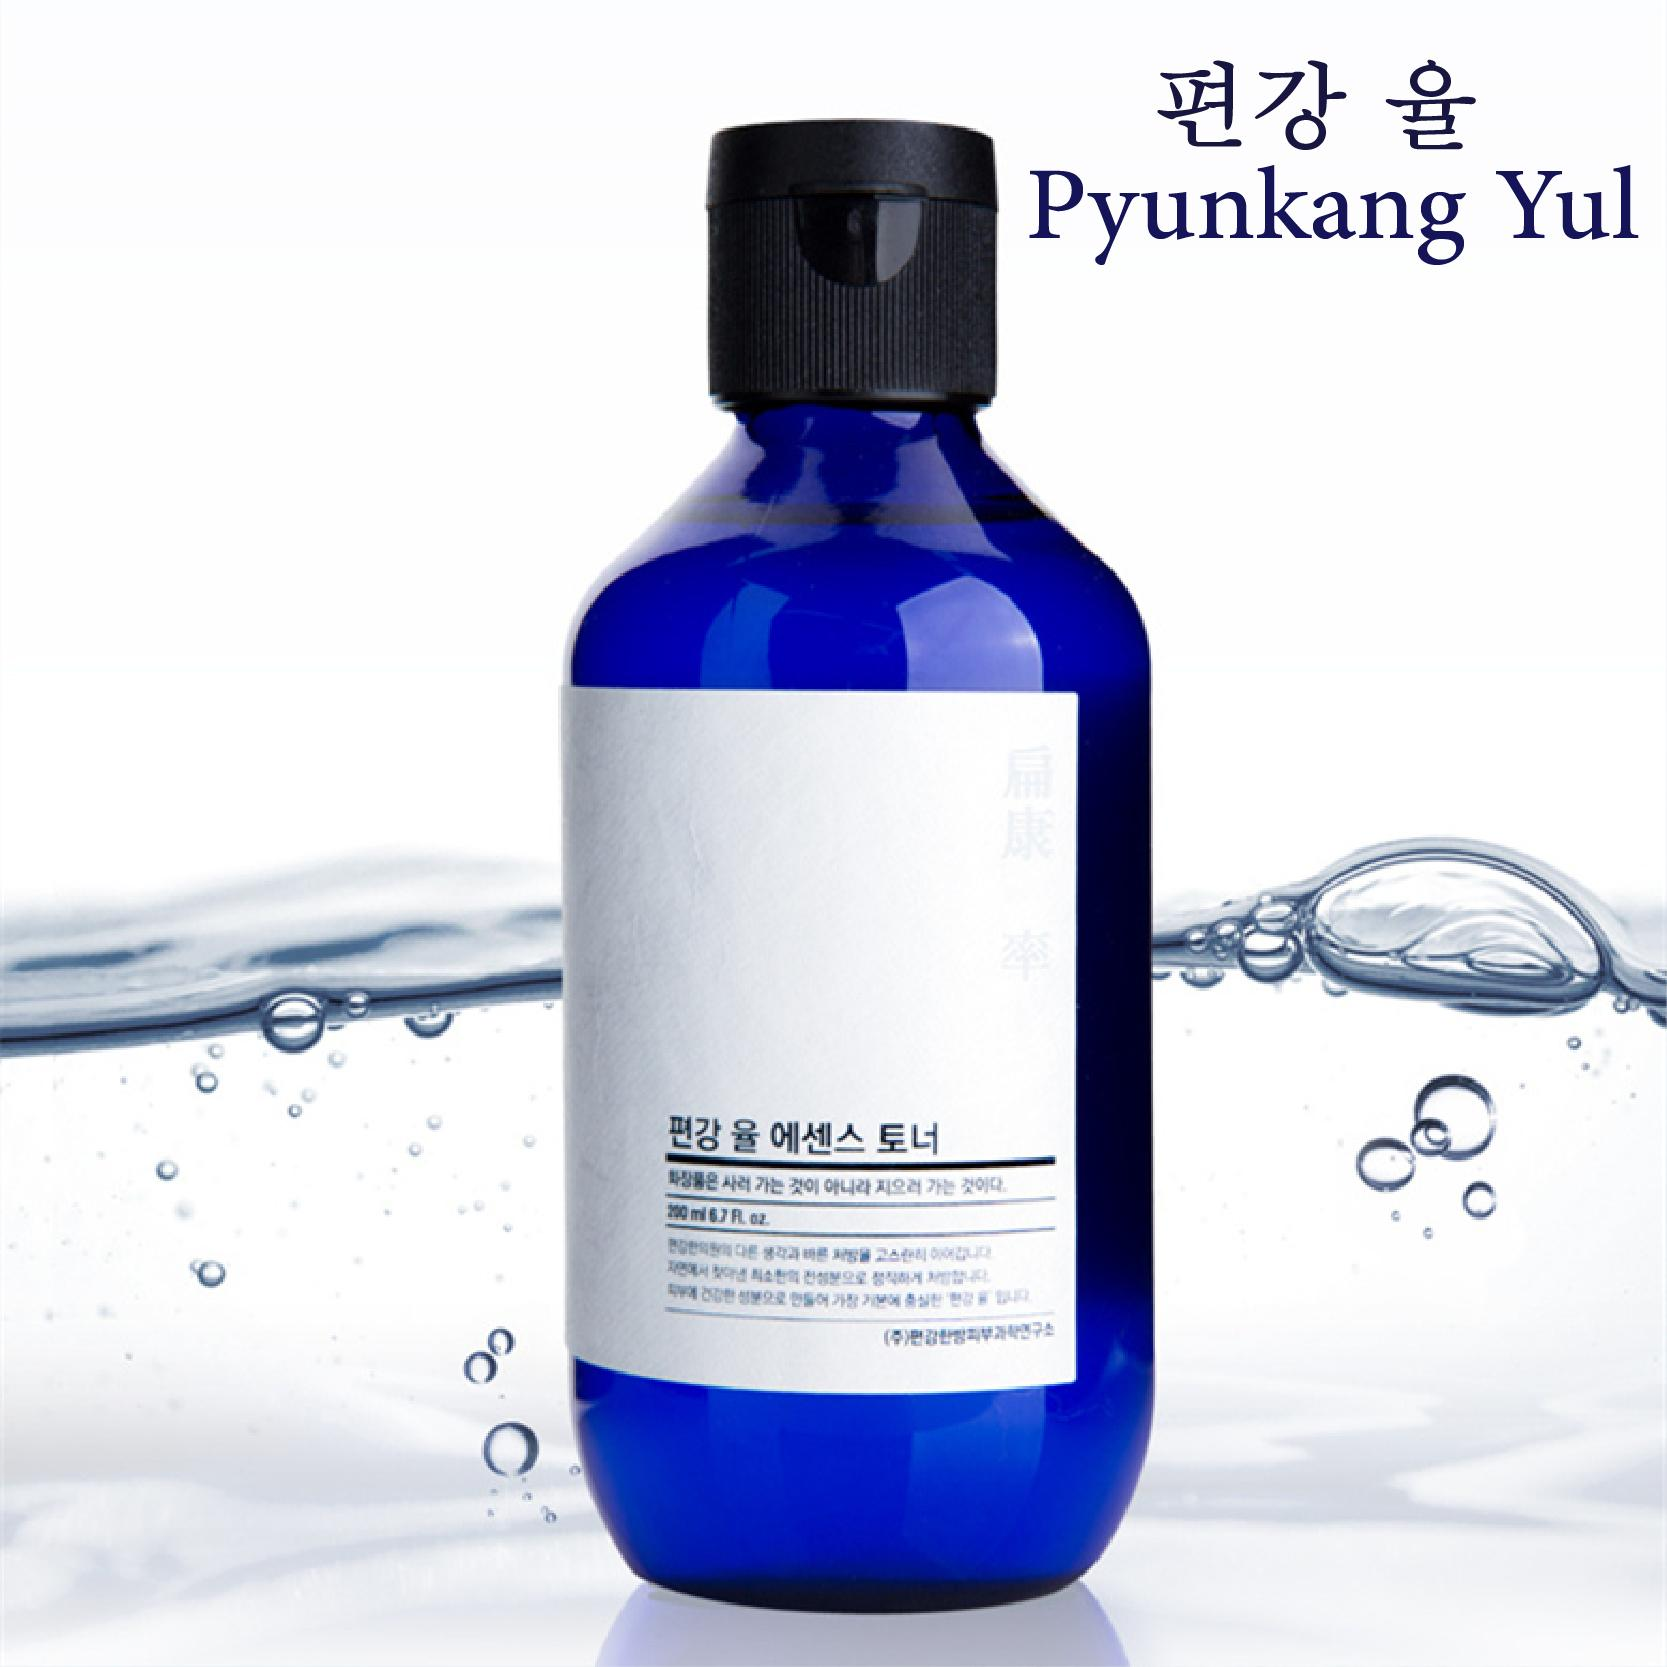 Price Pyunkang Yul Essence Toner 200Ml Online Singapore